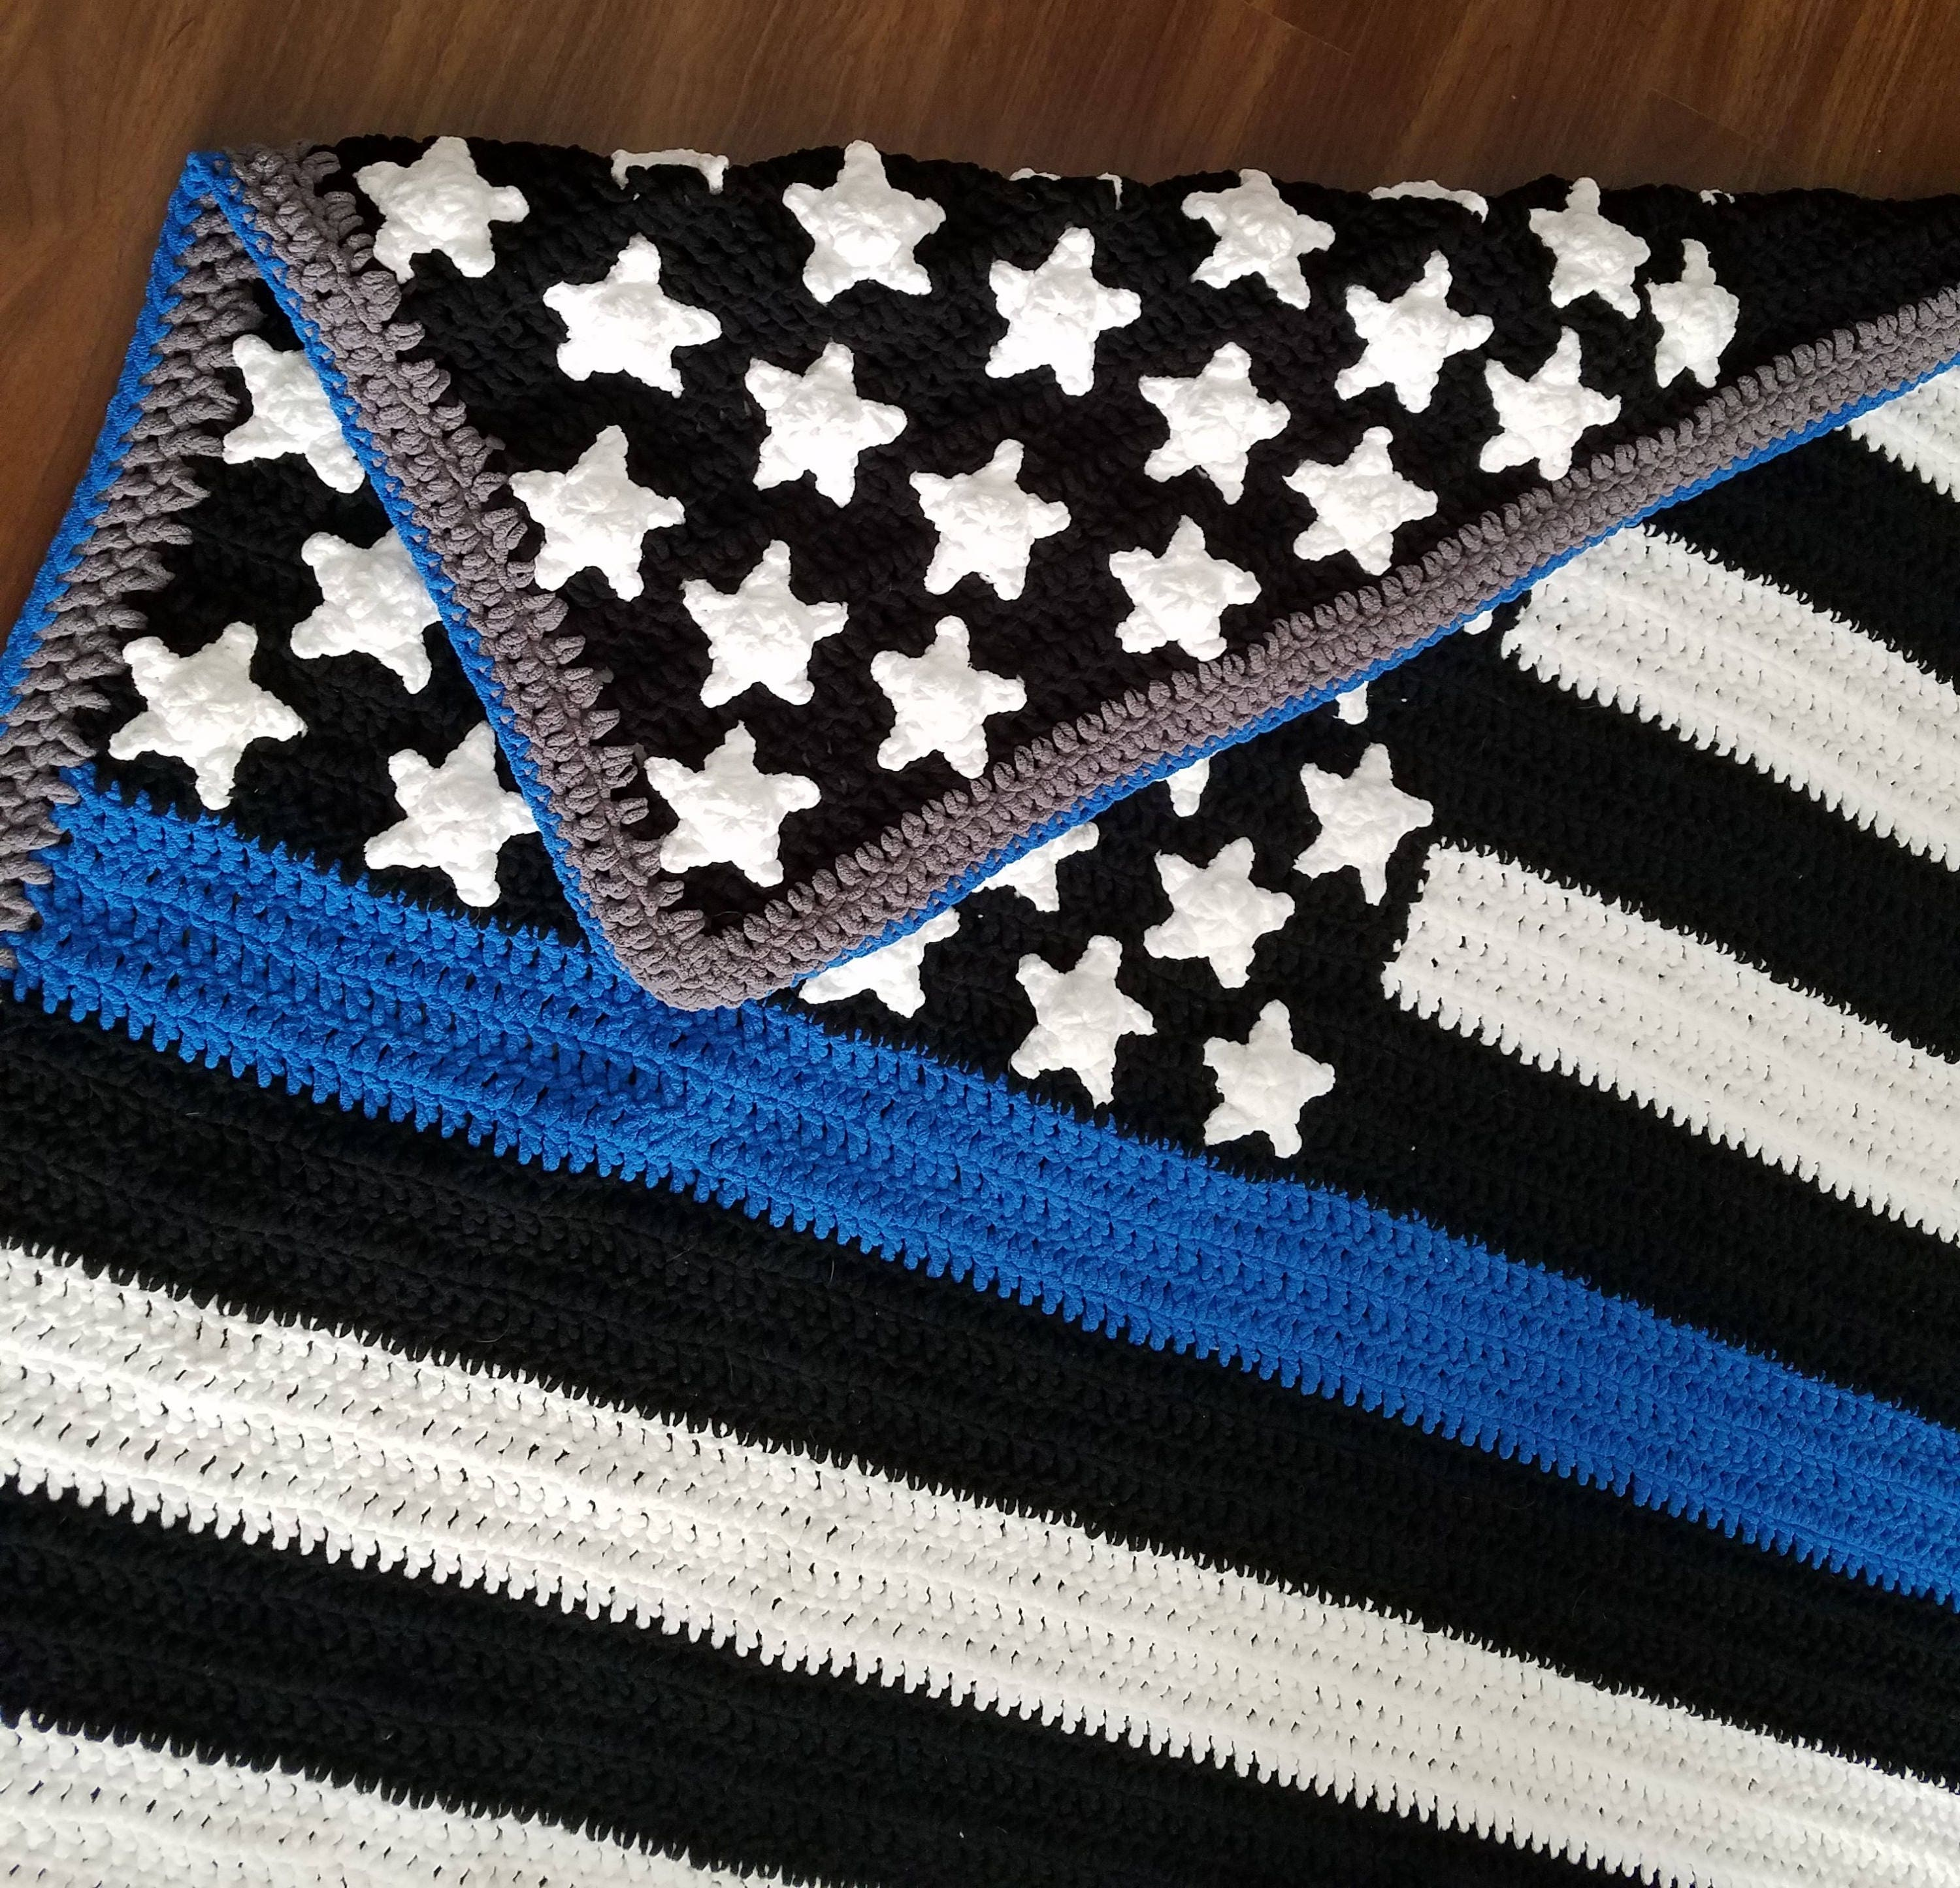 AK Crochet Thin Blue Line Police Flag Blanket PATTERN from ...